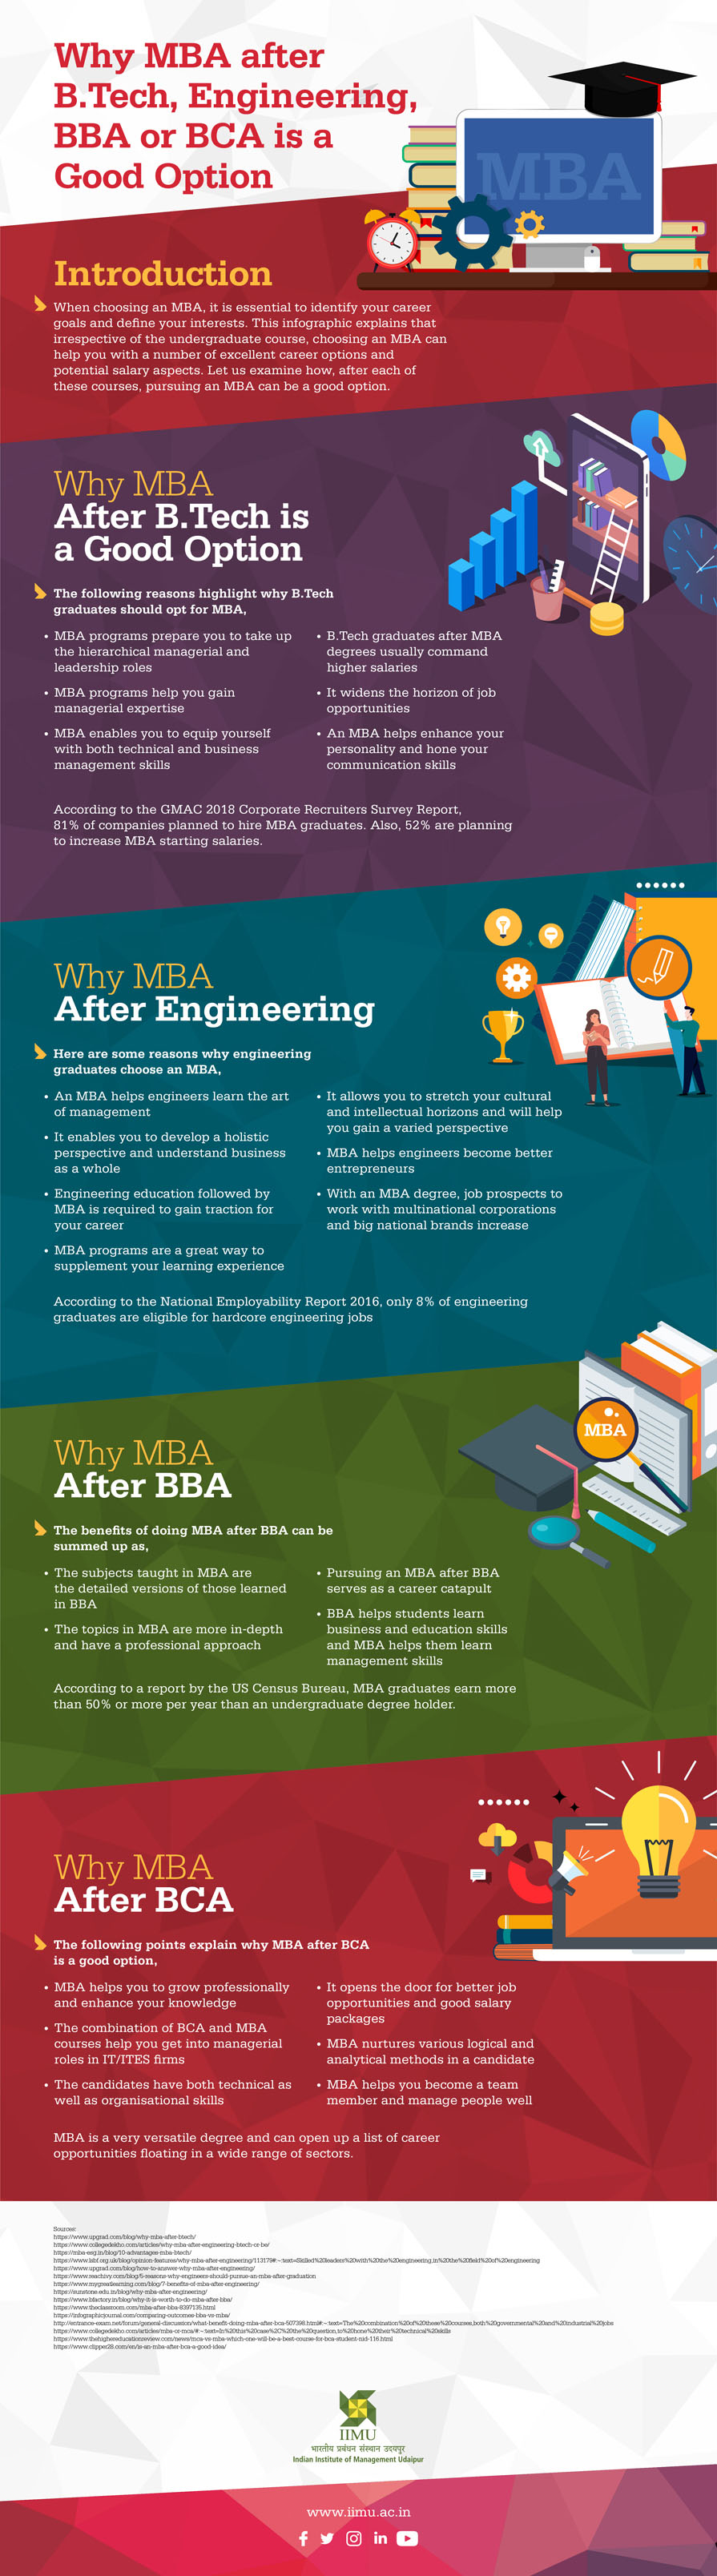 Why MBA After B.Tech, Engineering, BBA or BCA is a Good Option